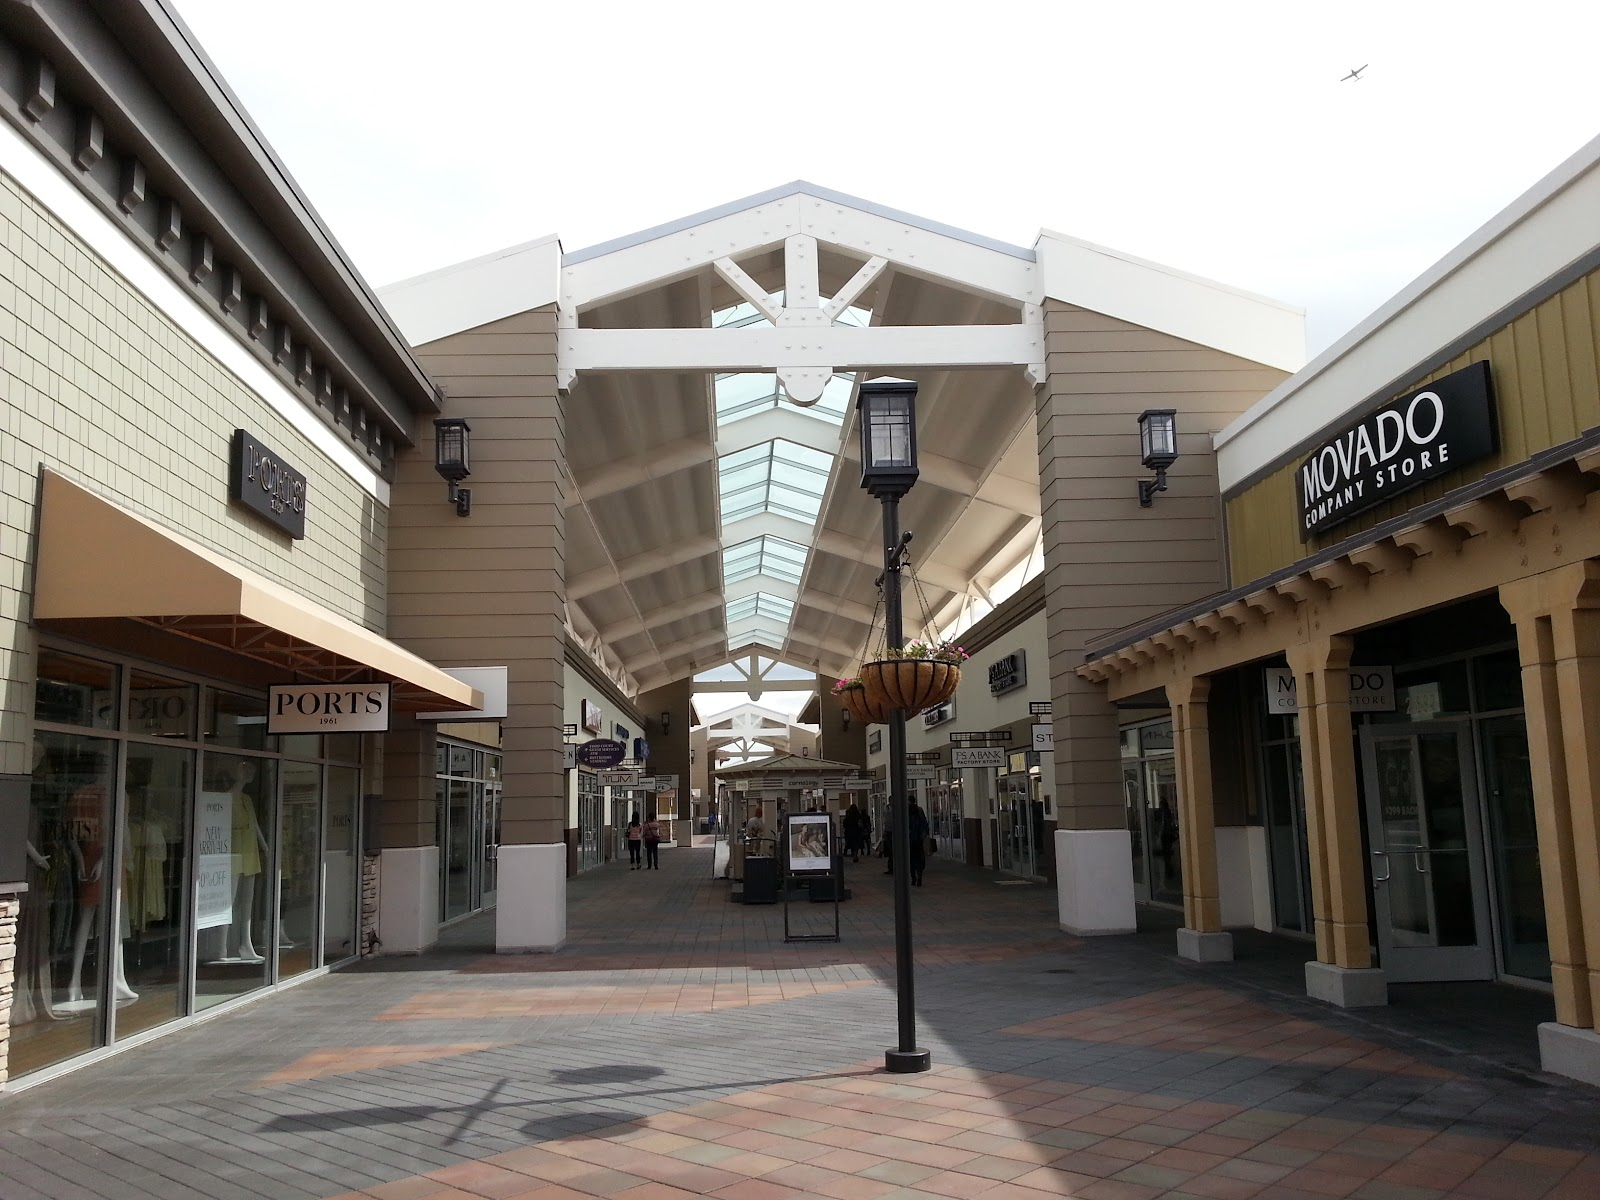 San Francisco Premium Outlets (Livermore Outlets) is located in Livermore, California and offers stores - Scroll down for San Francisco Premium Outlets (Livermore Outlets) outlet shopping information: store list, locations, outlet mall hours, contact and address.3/5(10).